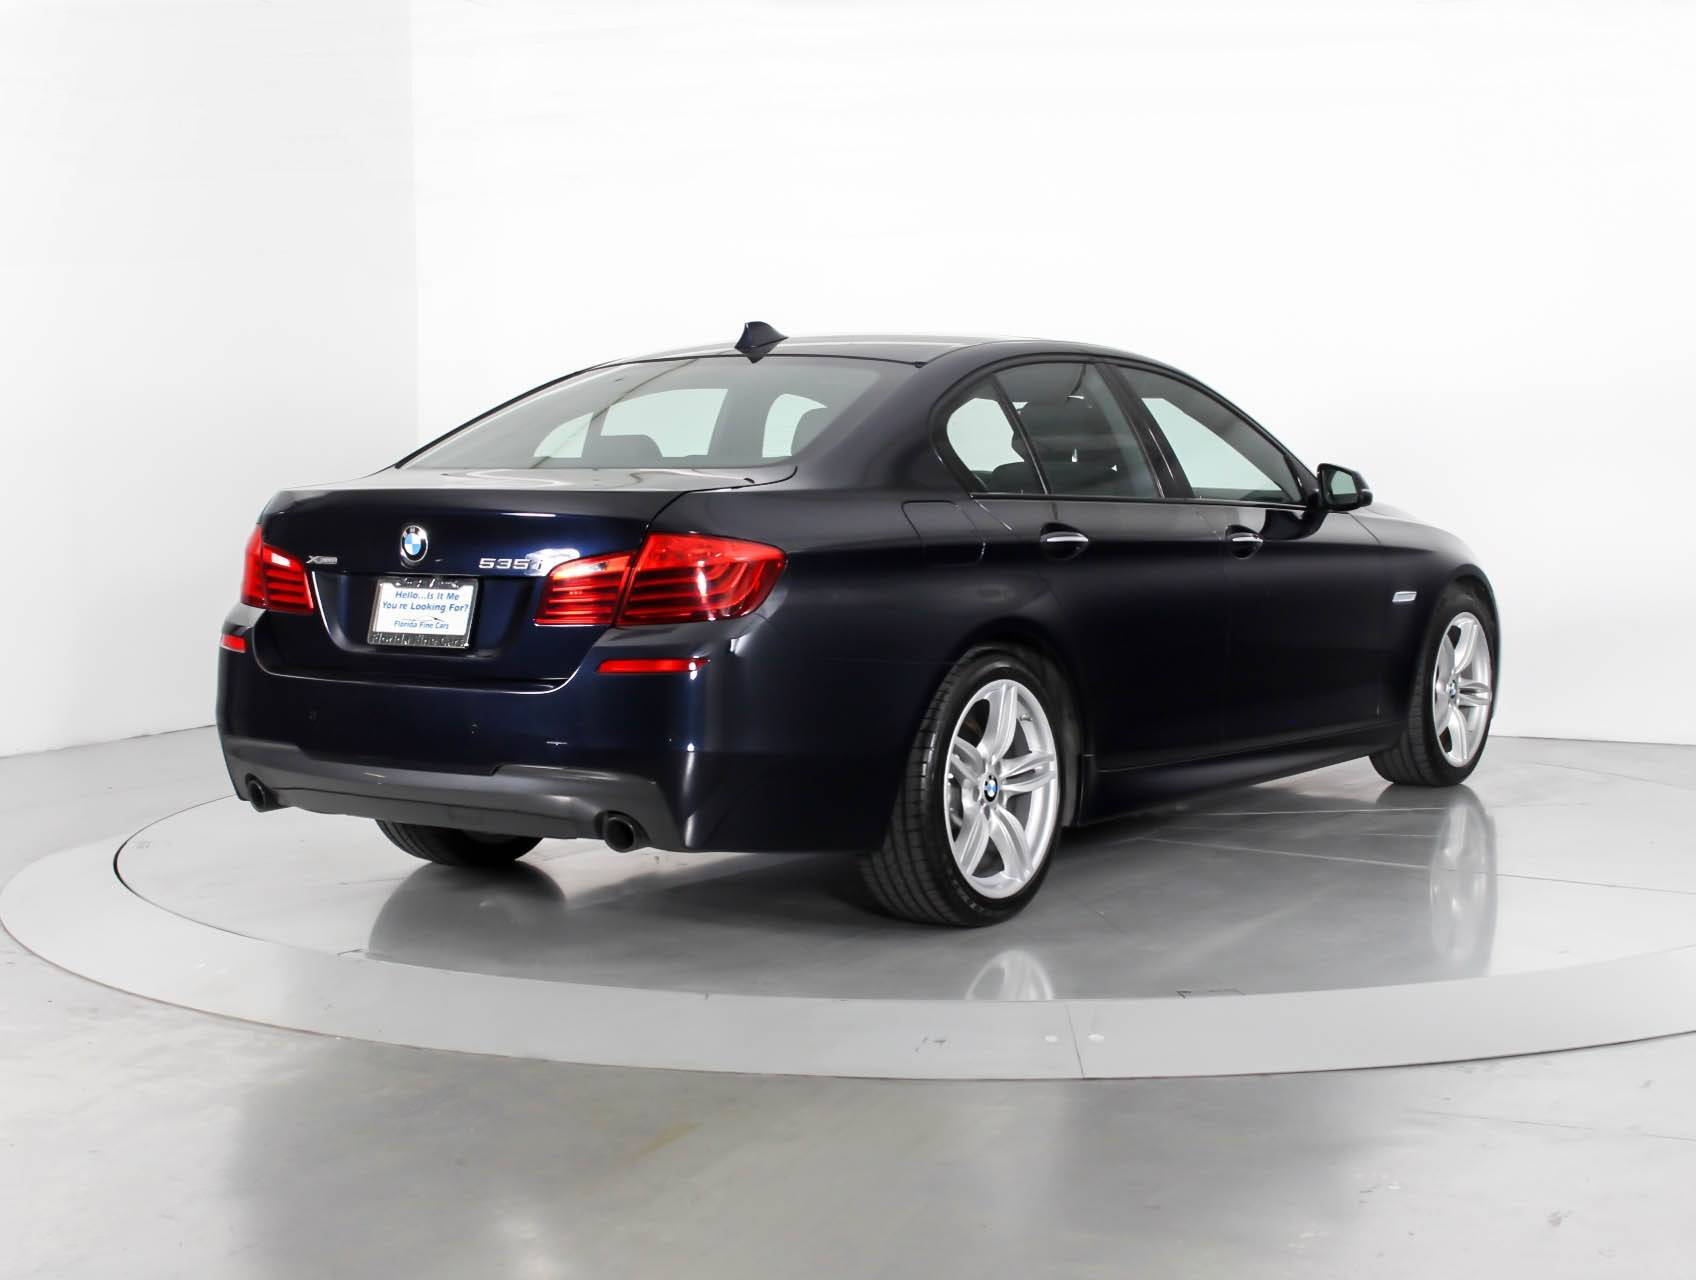 bmw rating reviews side luxury en motor cars turismo view and hatchback gran trend series canada